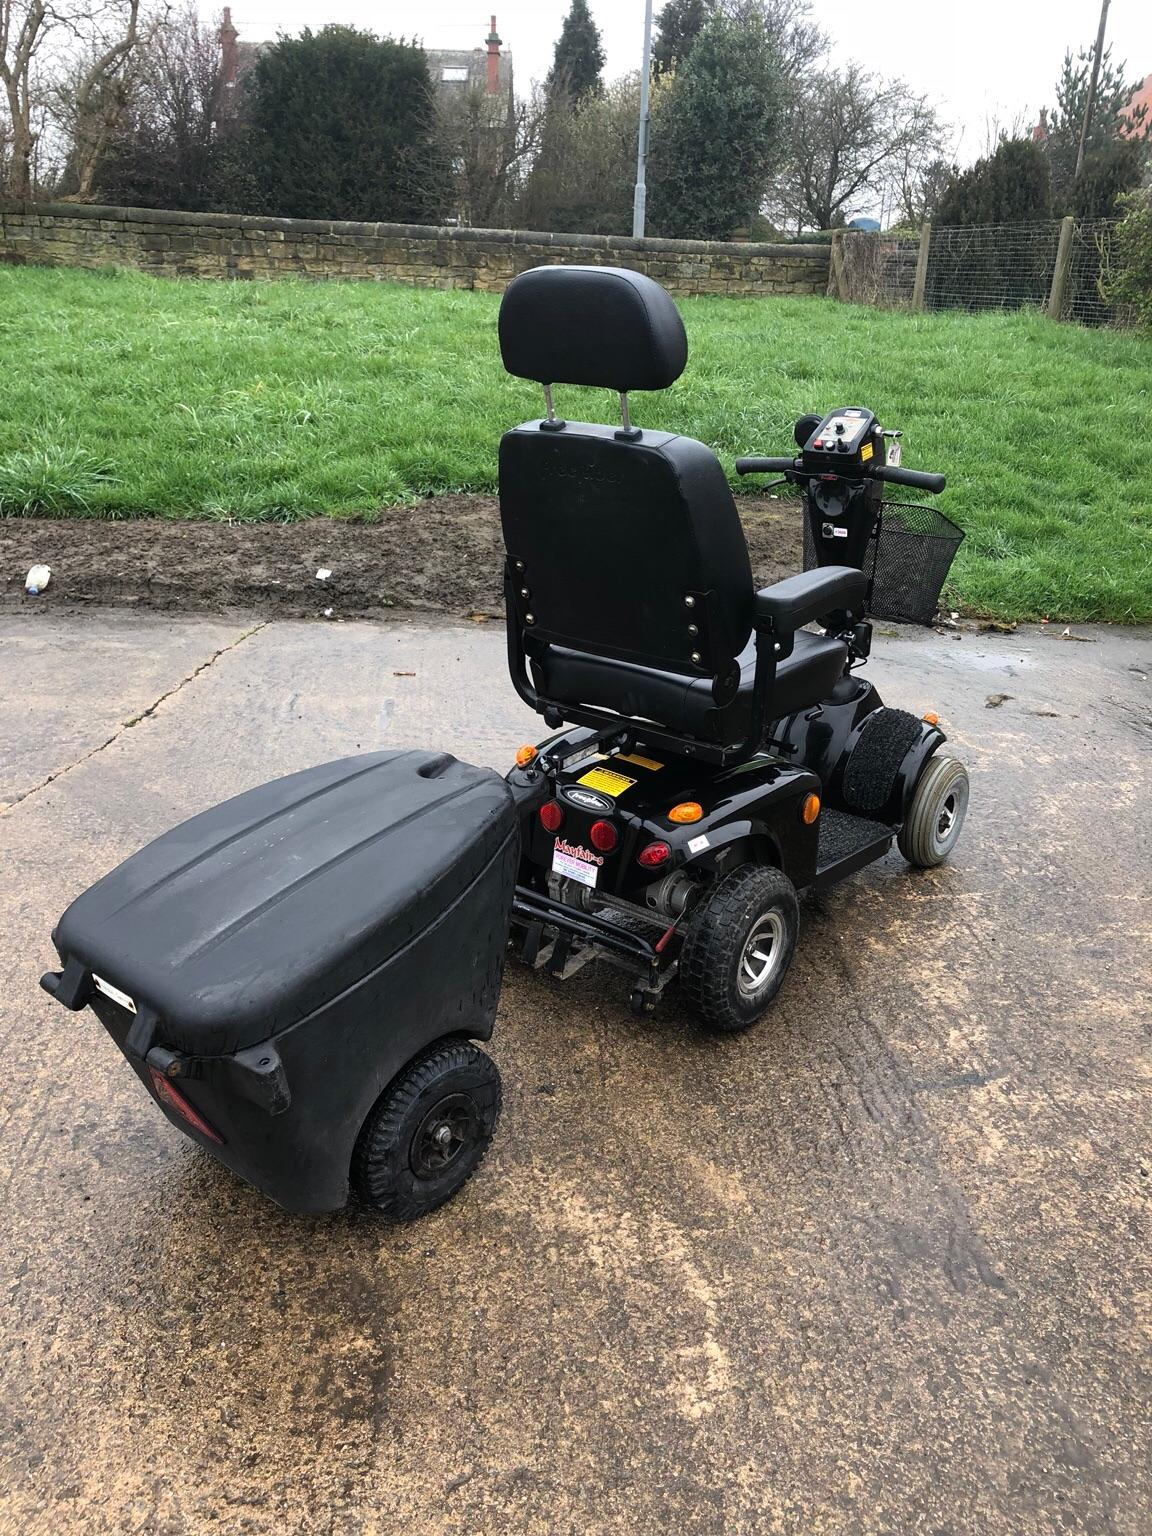 FREERIDER MAYFAIR MOBILITY SCOOTER TRAILER